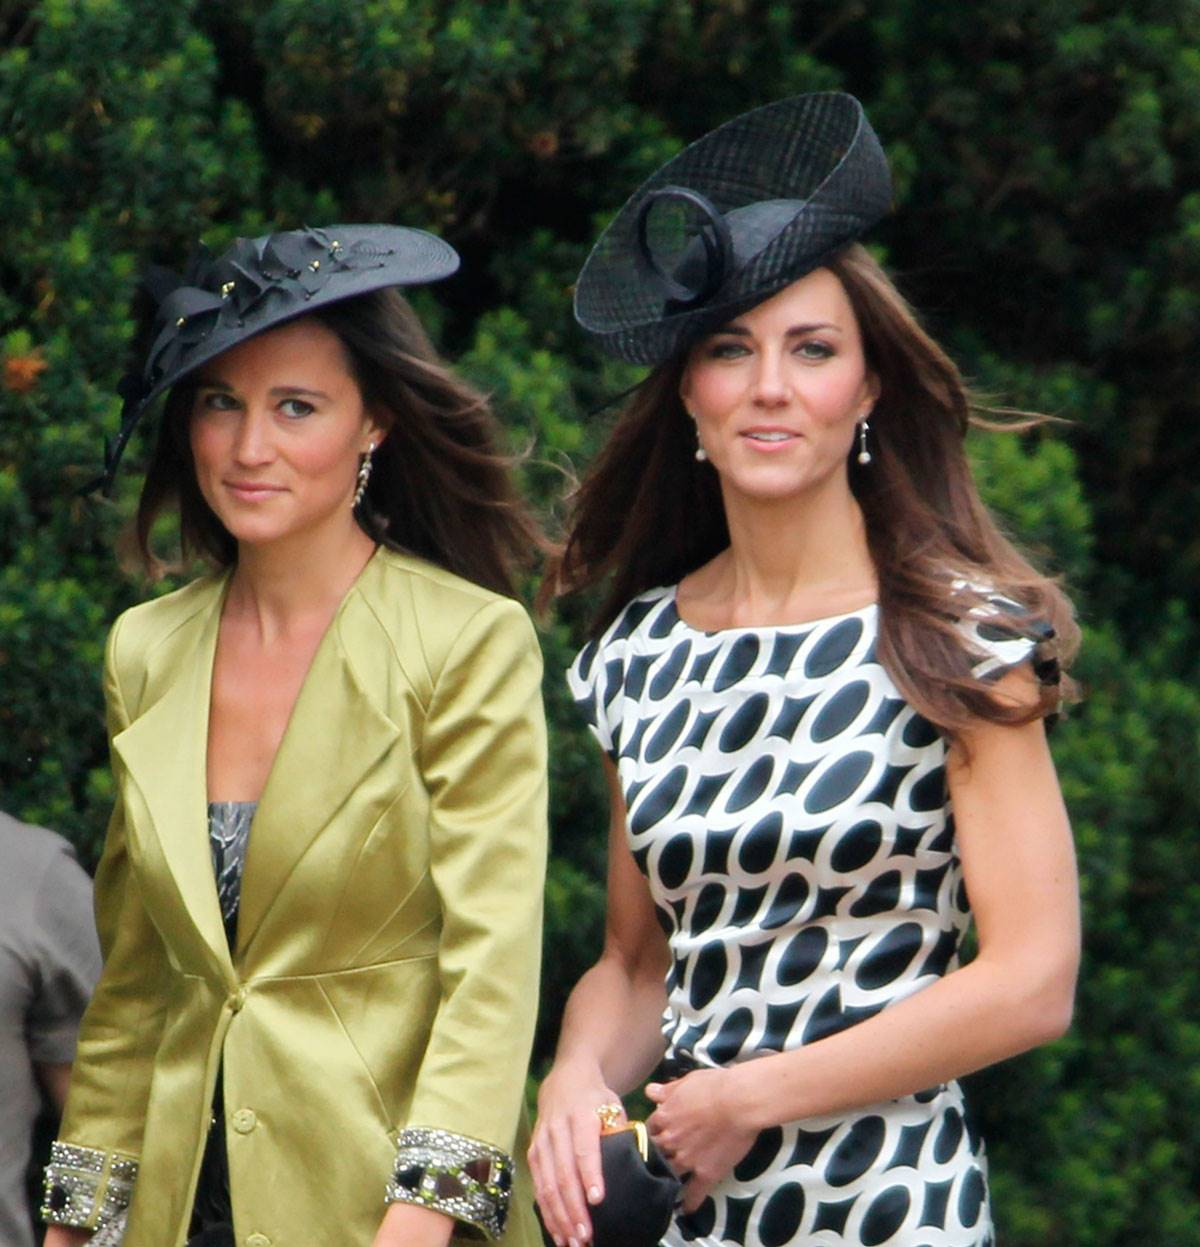 KATE. Kate Middleton y su hermana Pippa